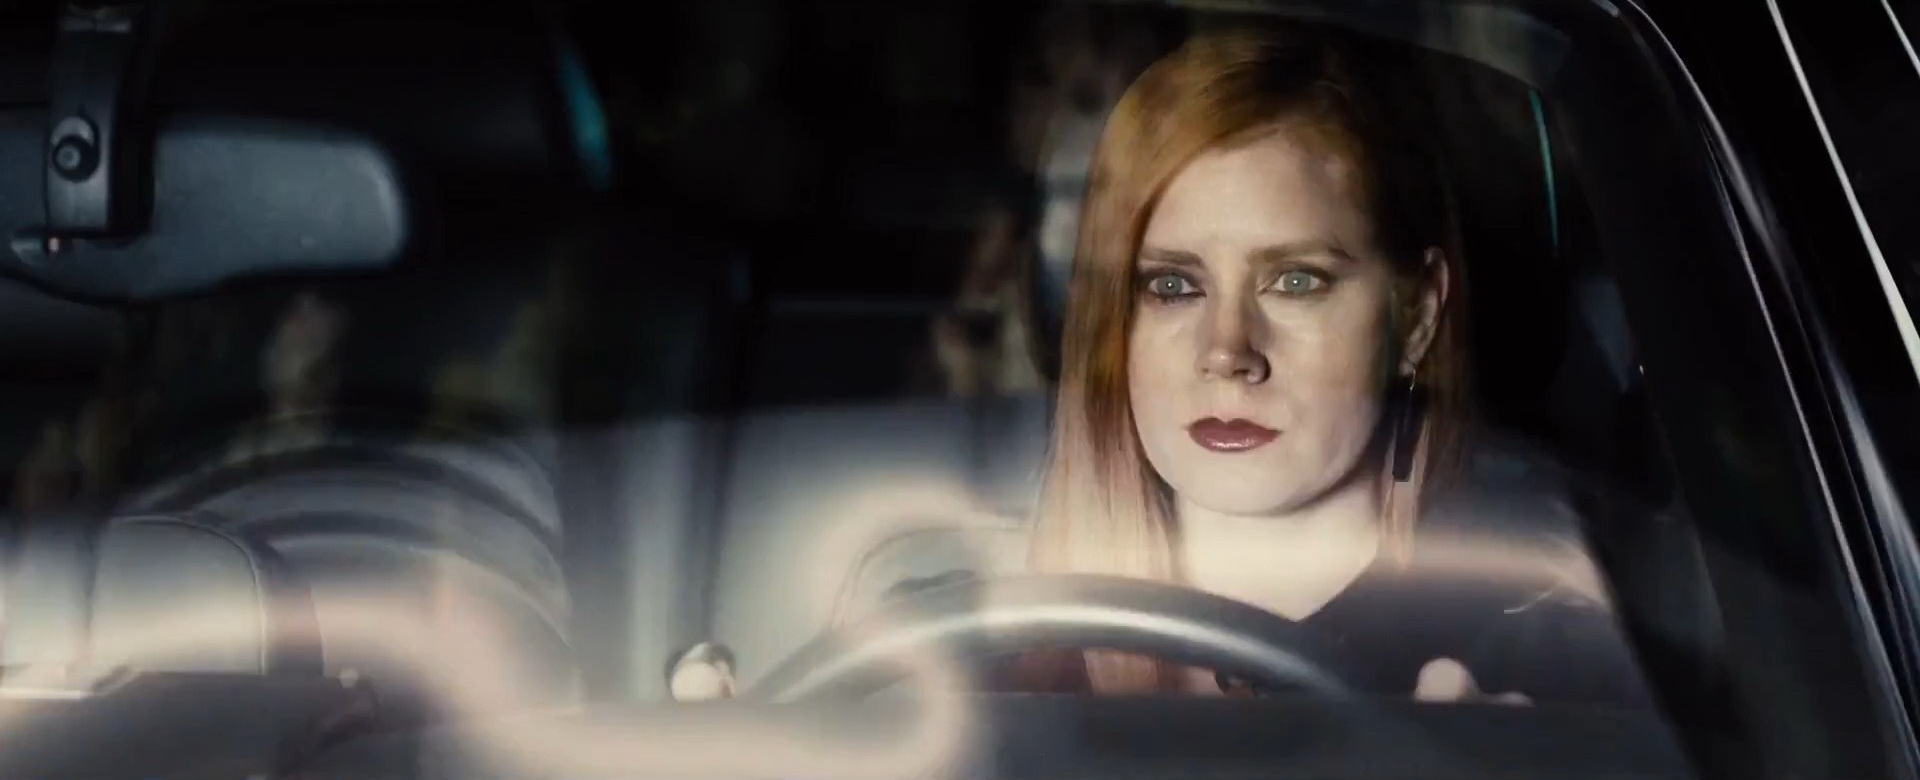 'Nocturnal Animals' comes to Netflix: Worth a watch?